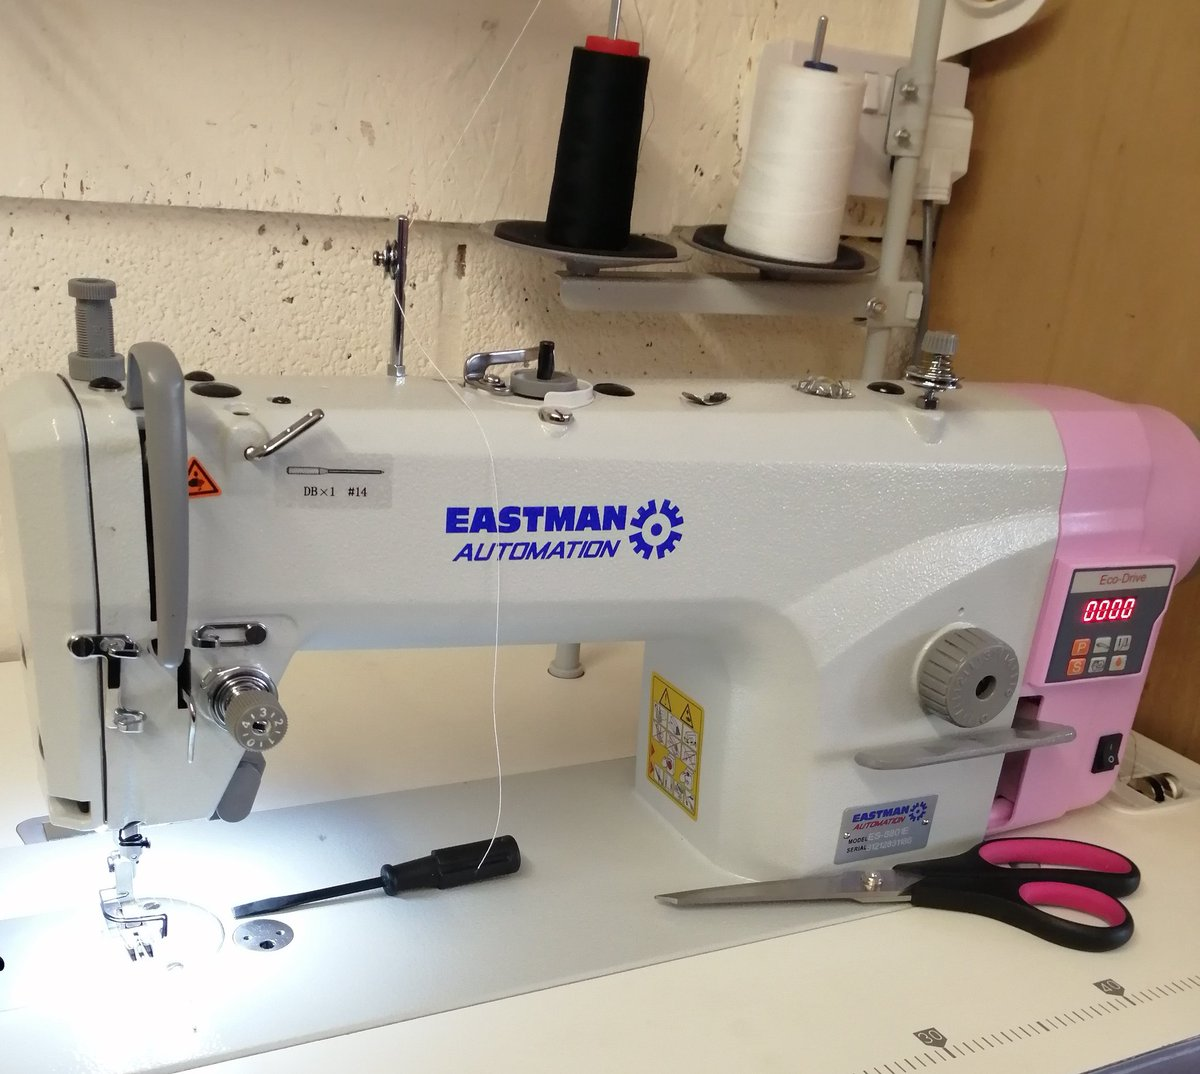 #WorcestershireHour are you in need of a textile manufacturer? Get in touch today! We are ready to help! https://t.co/h50dWVCE9Z